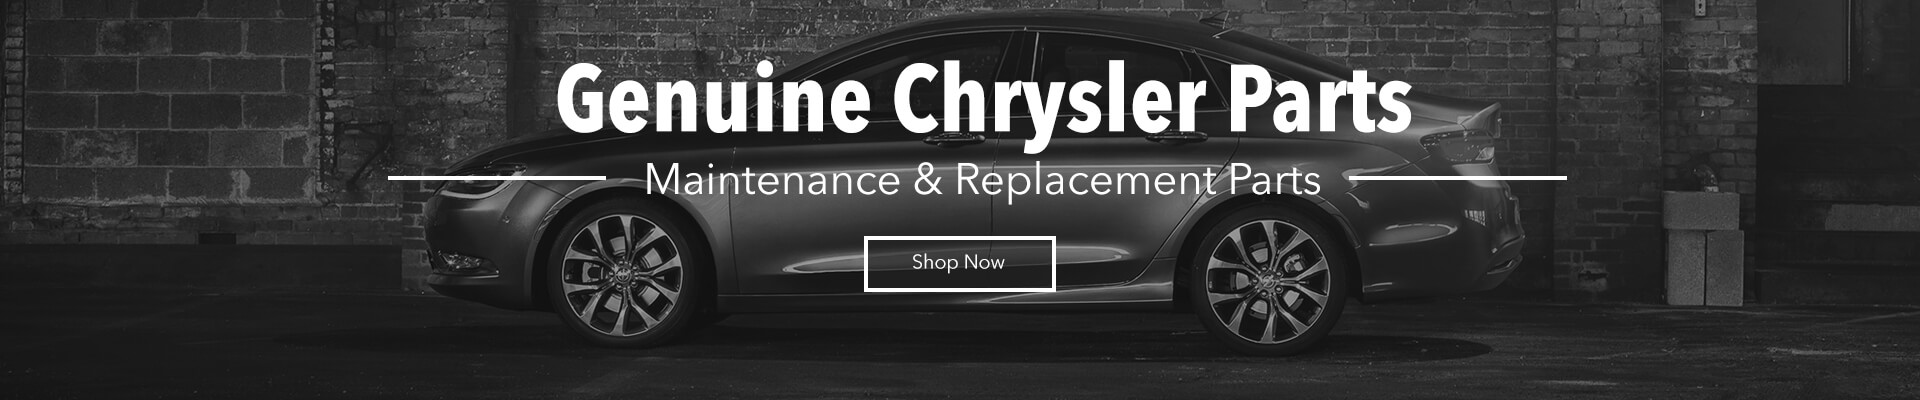 OEM Chrysler Maintenance Parts